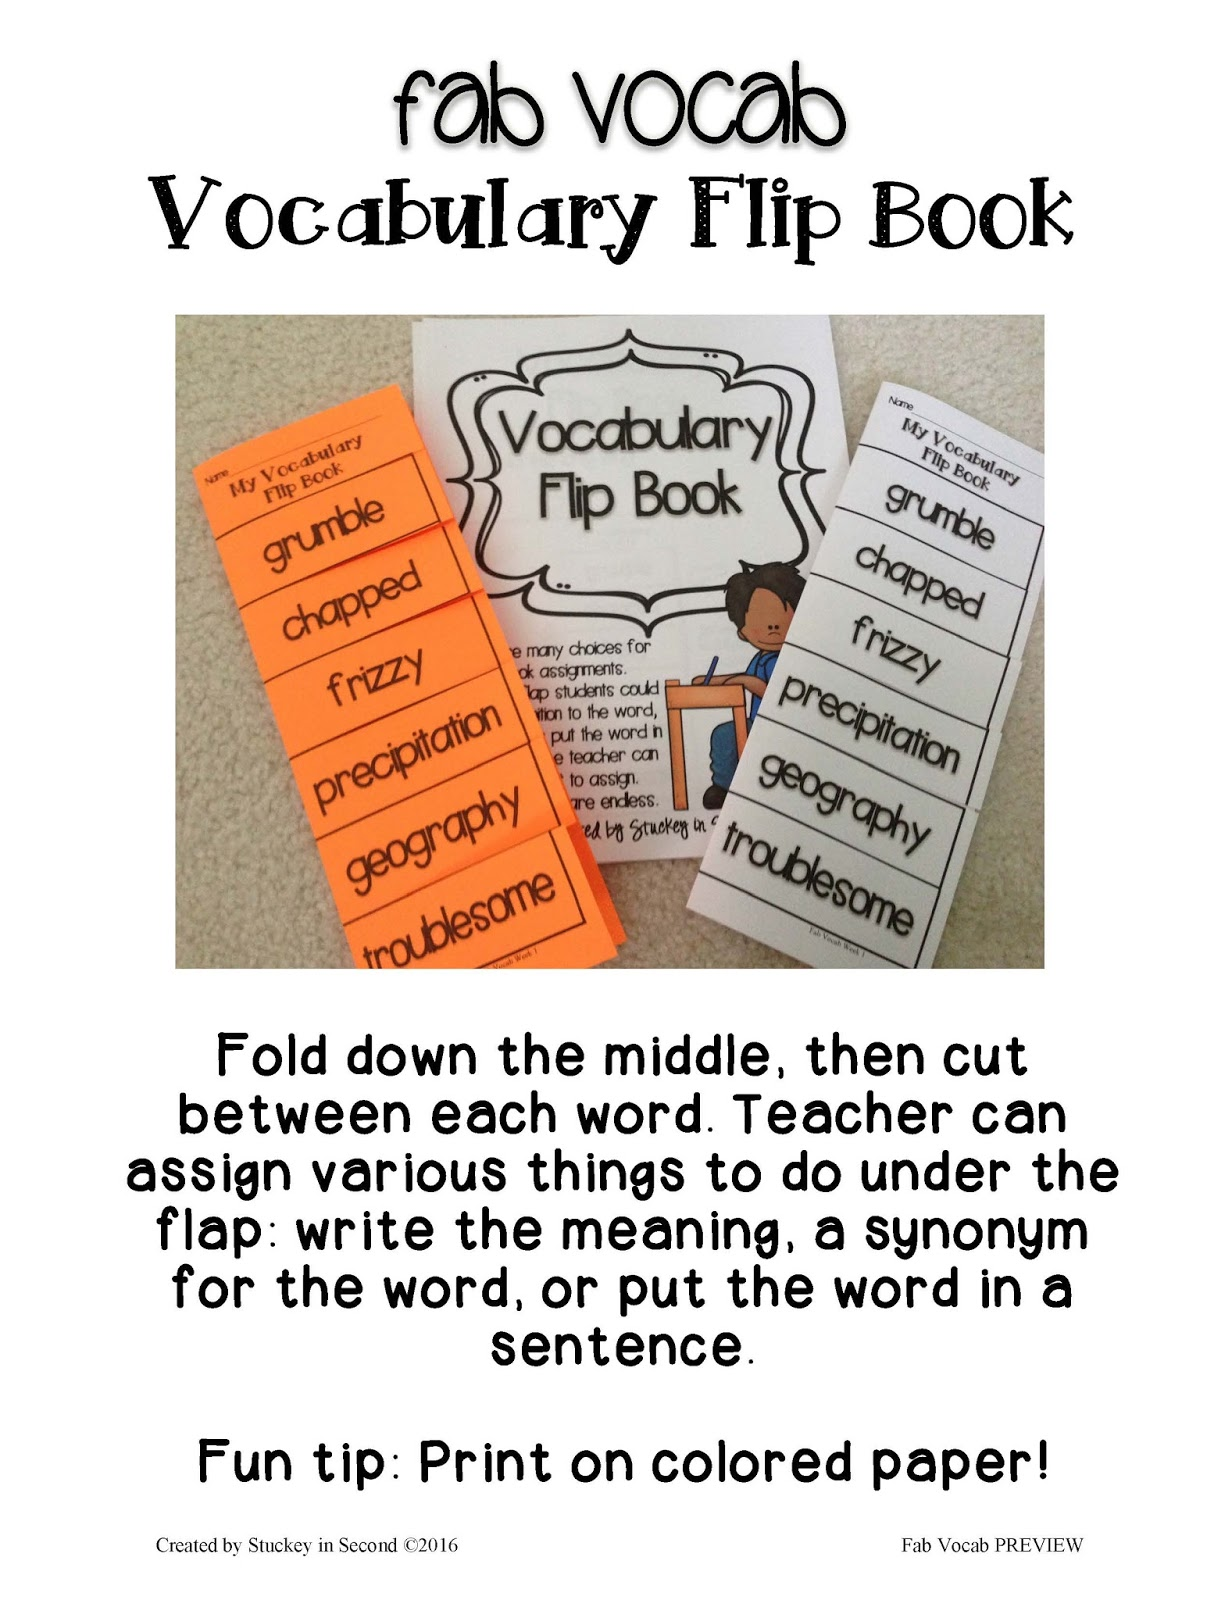 Stuckey In Second Fab Vocab Weekly Vocabulary Units